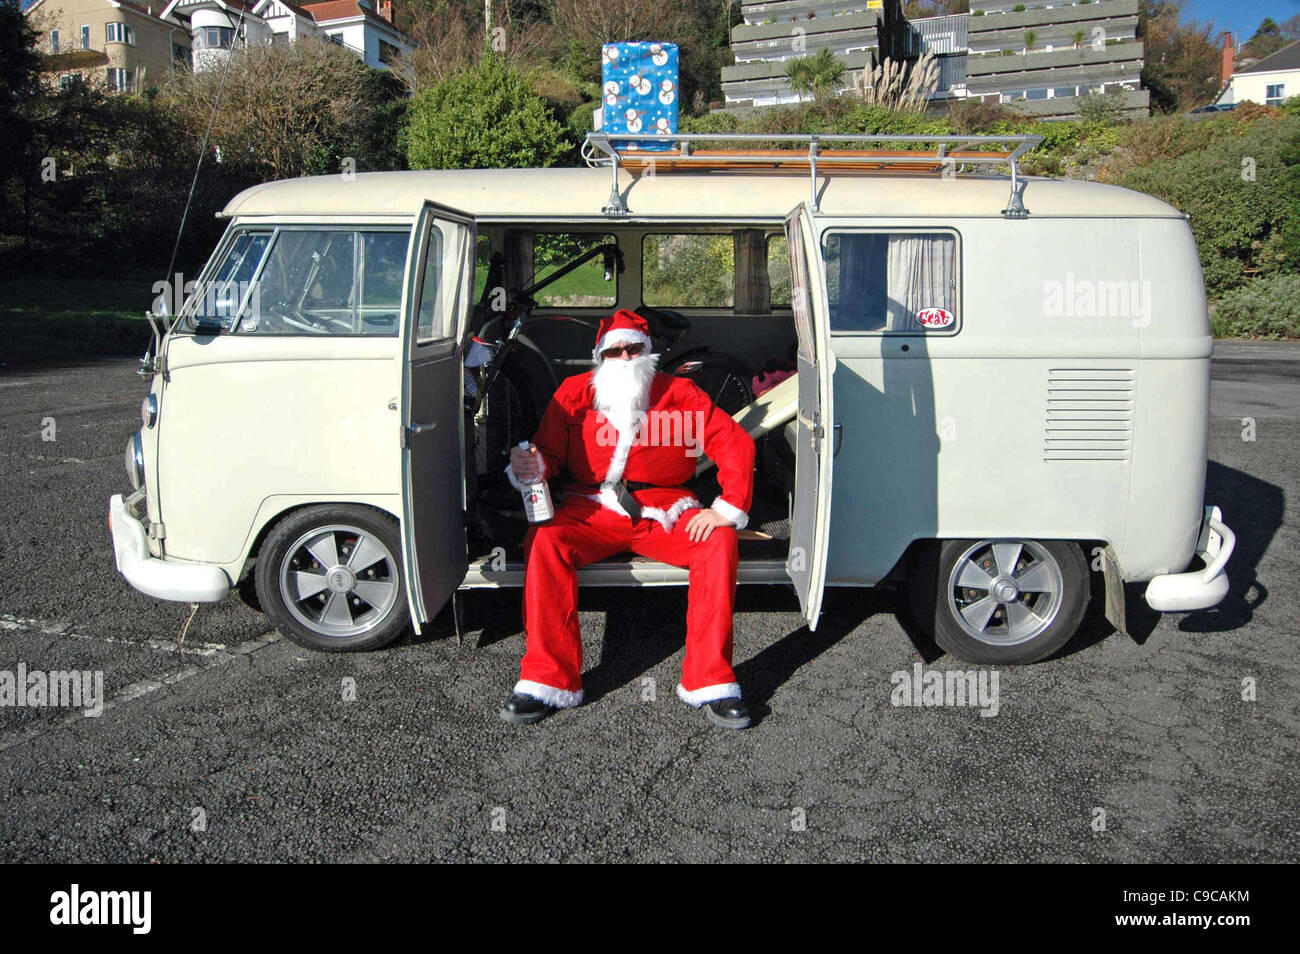 All Wales Drink Driving Xmas